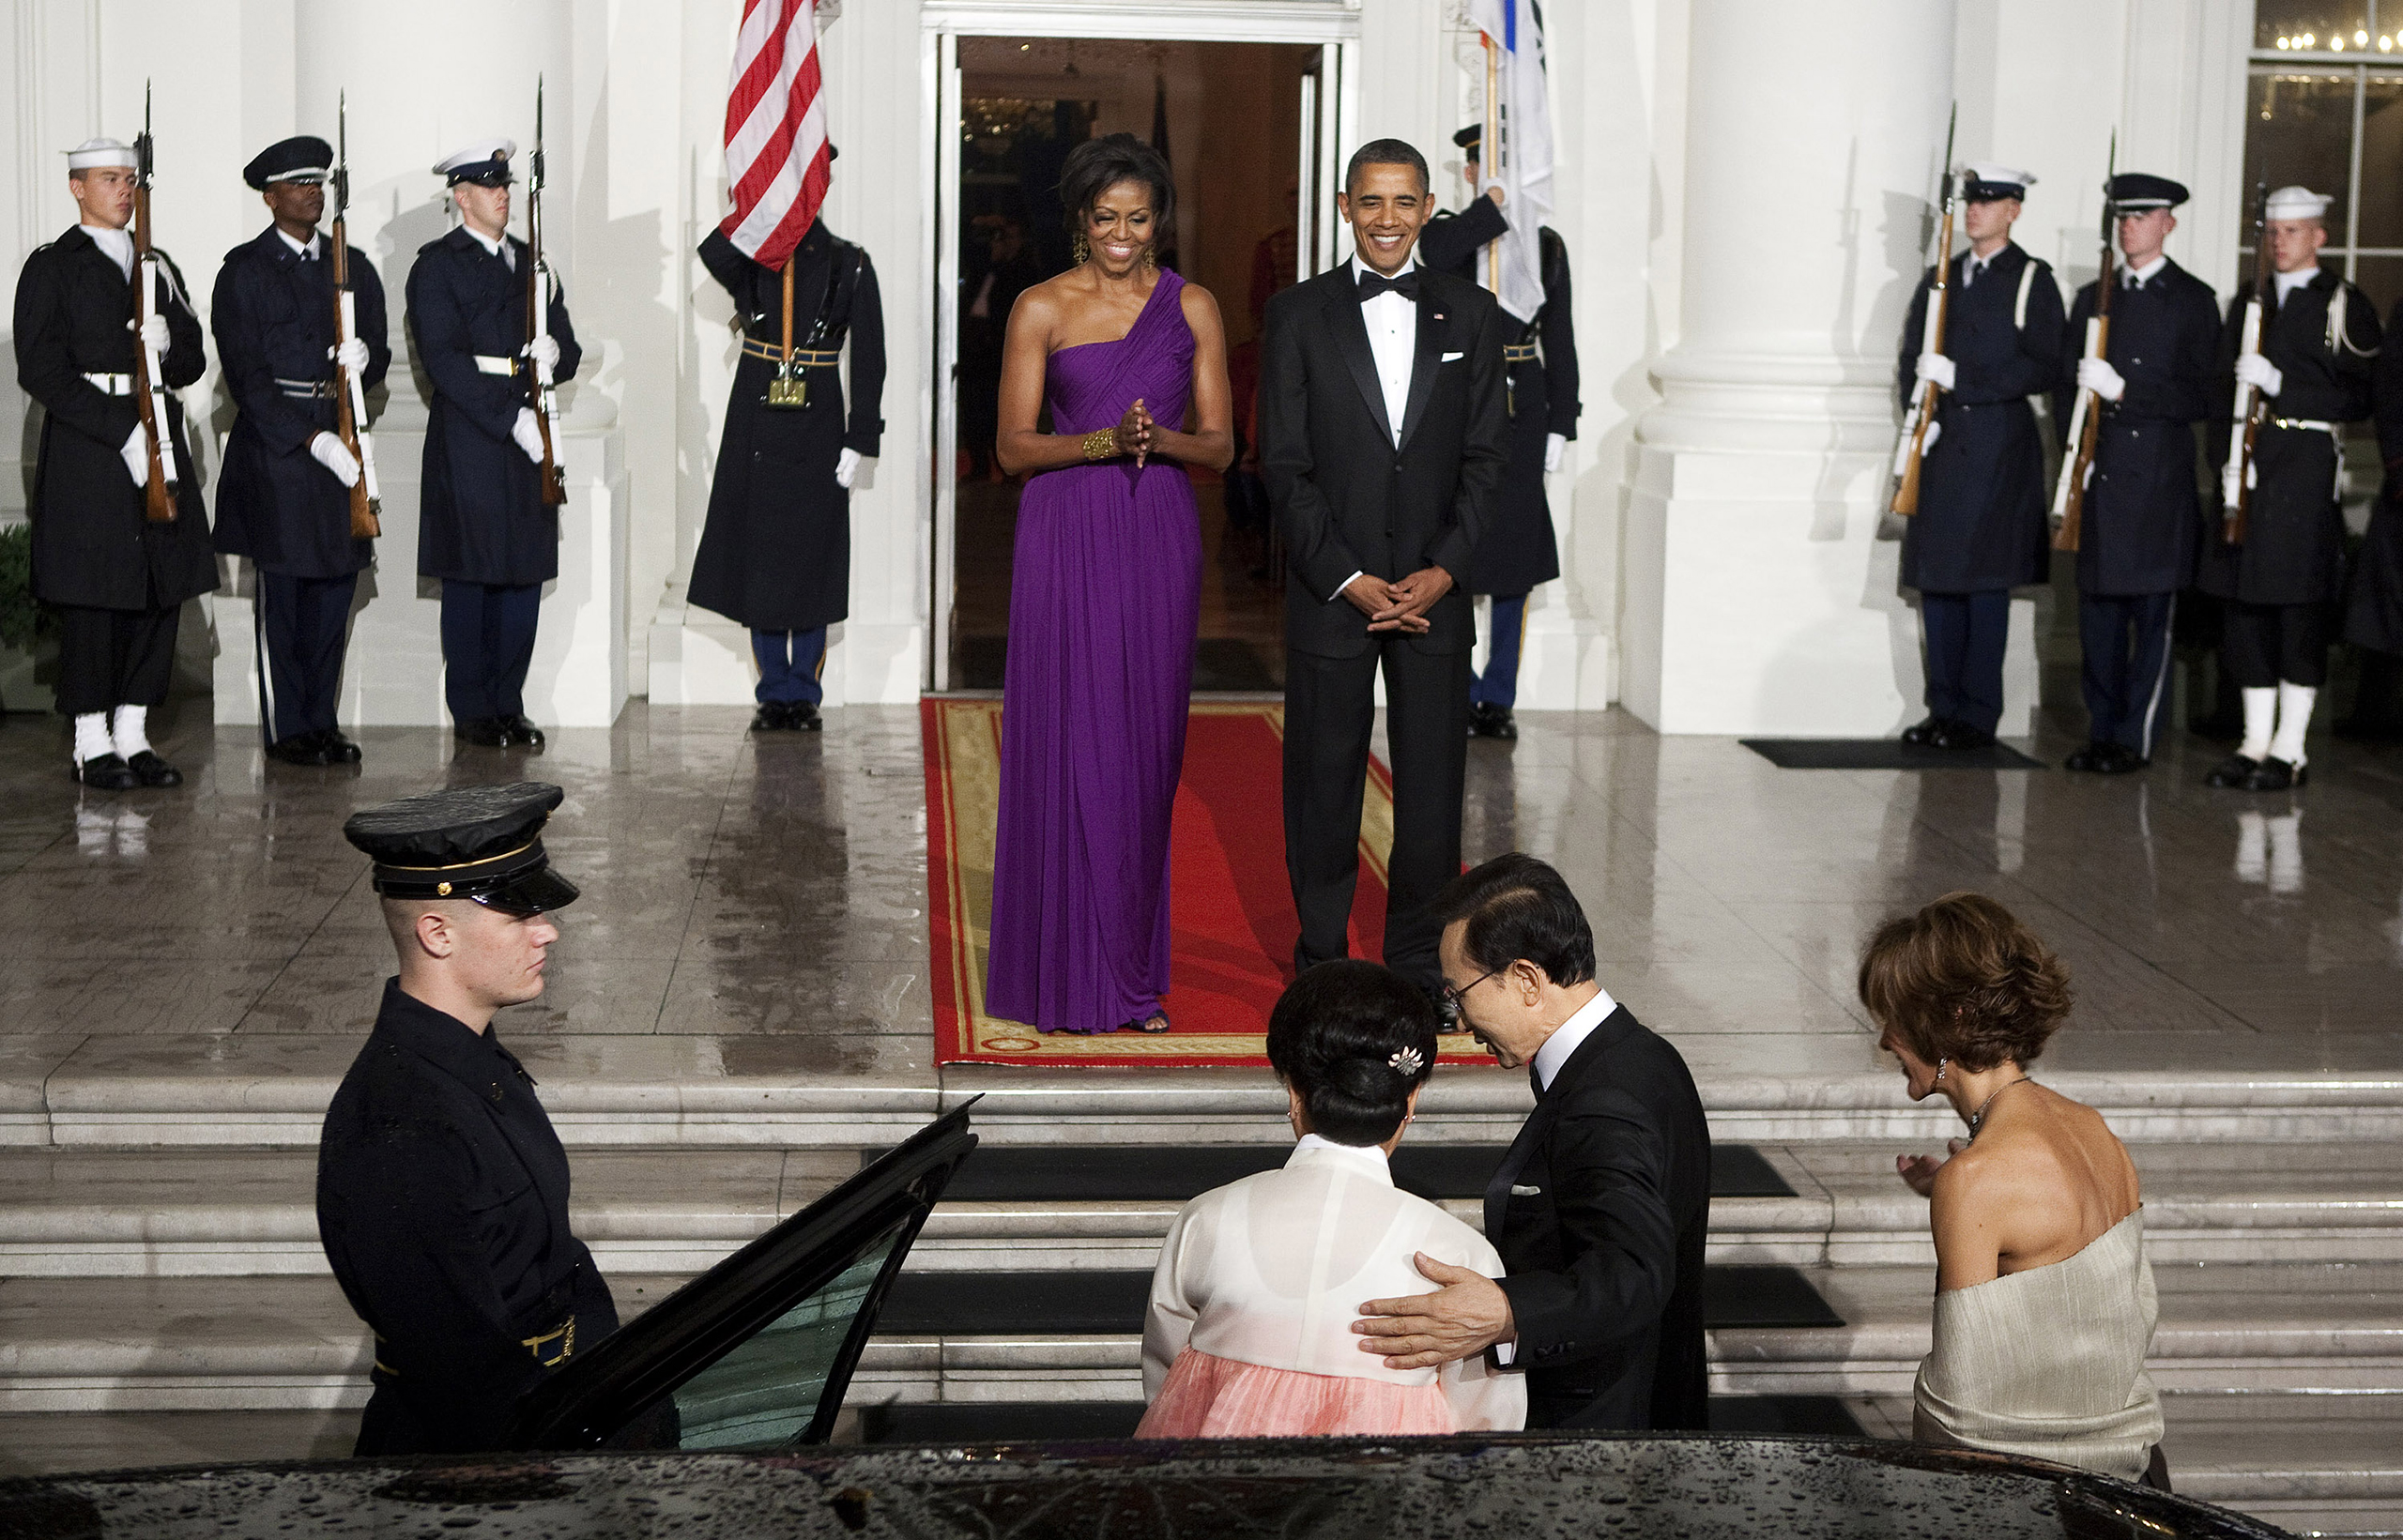 Barack Obama, center right, and Michelle Obama, center left, greet Lee Myung-bak, president of South Korea, foreground center right, and Kim Yoon-ok, First Lady of South Korea, foreground center left, at the North Portico of the White House in Washington, D.C., on Oct. 13, 2011.